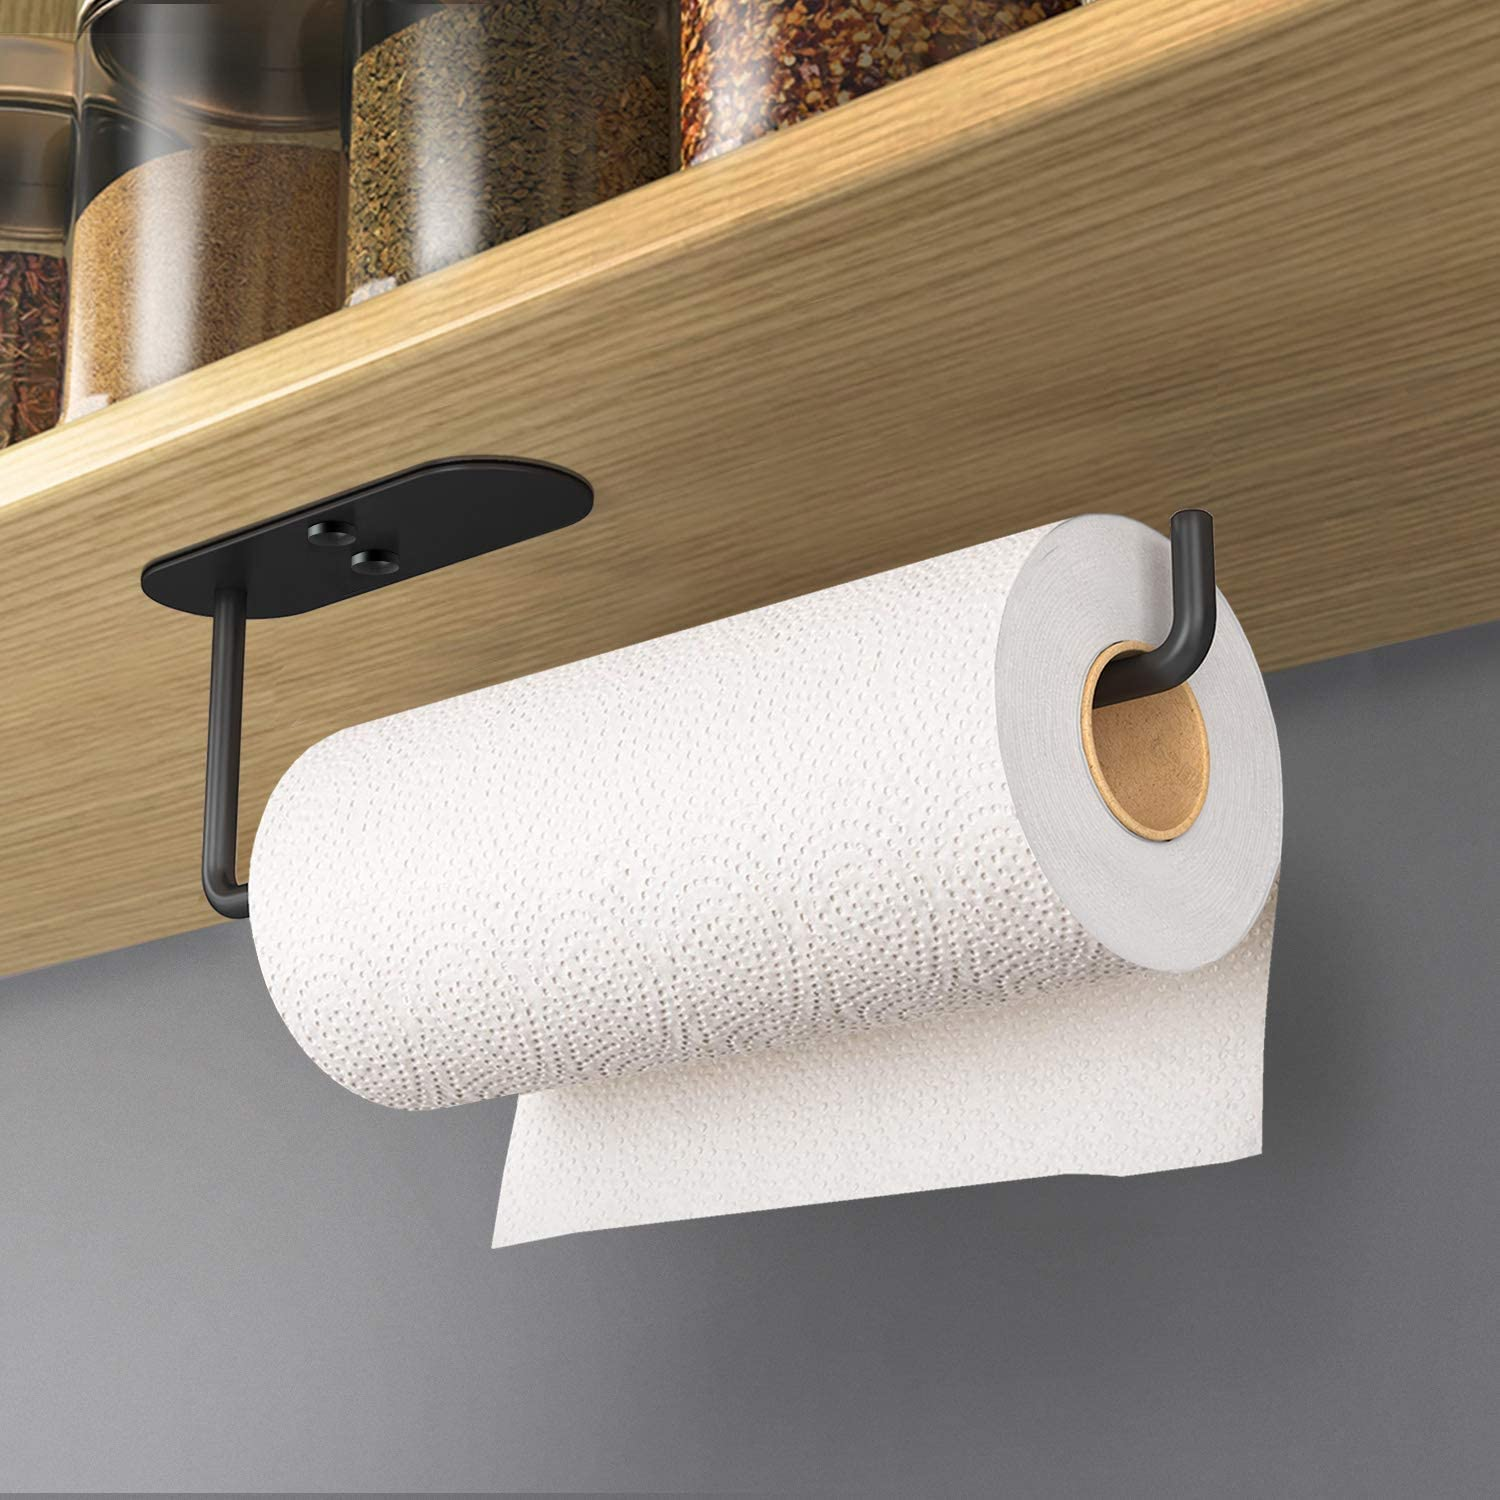 VAEHOLD Adhesive Paper Towel Holder Mount Cabinet Black Seattle Mall San Francisco Mall Under P